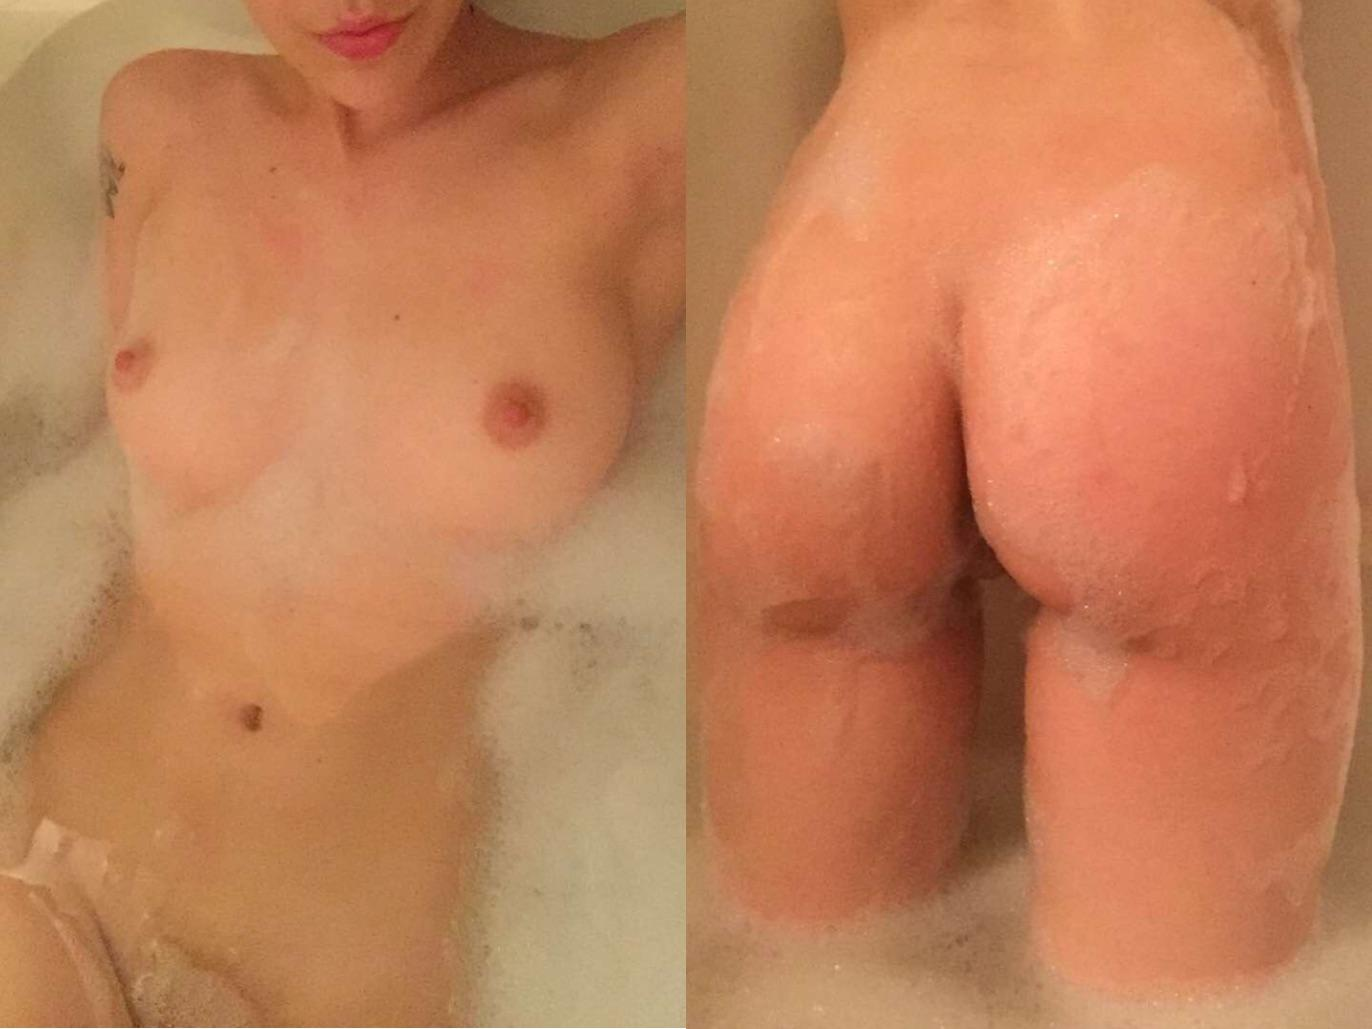 sydney cole pornstar adults only xxx #TheSuplierAproves #bathtub #suds #tits #ass #petite #cute @ #red-daffodilly on #reddit